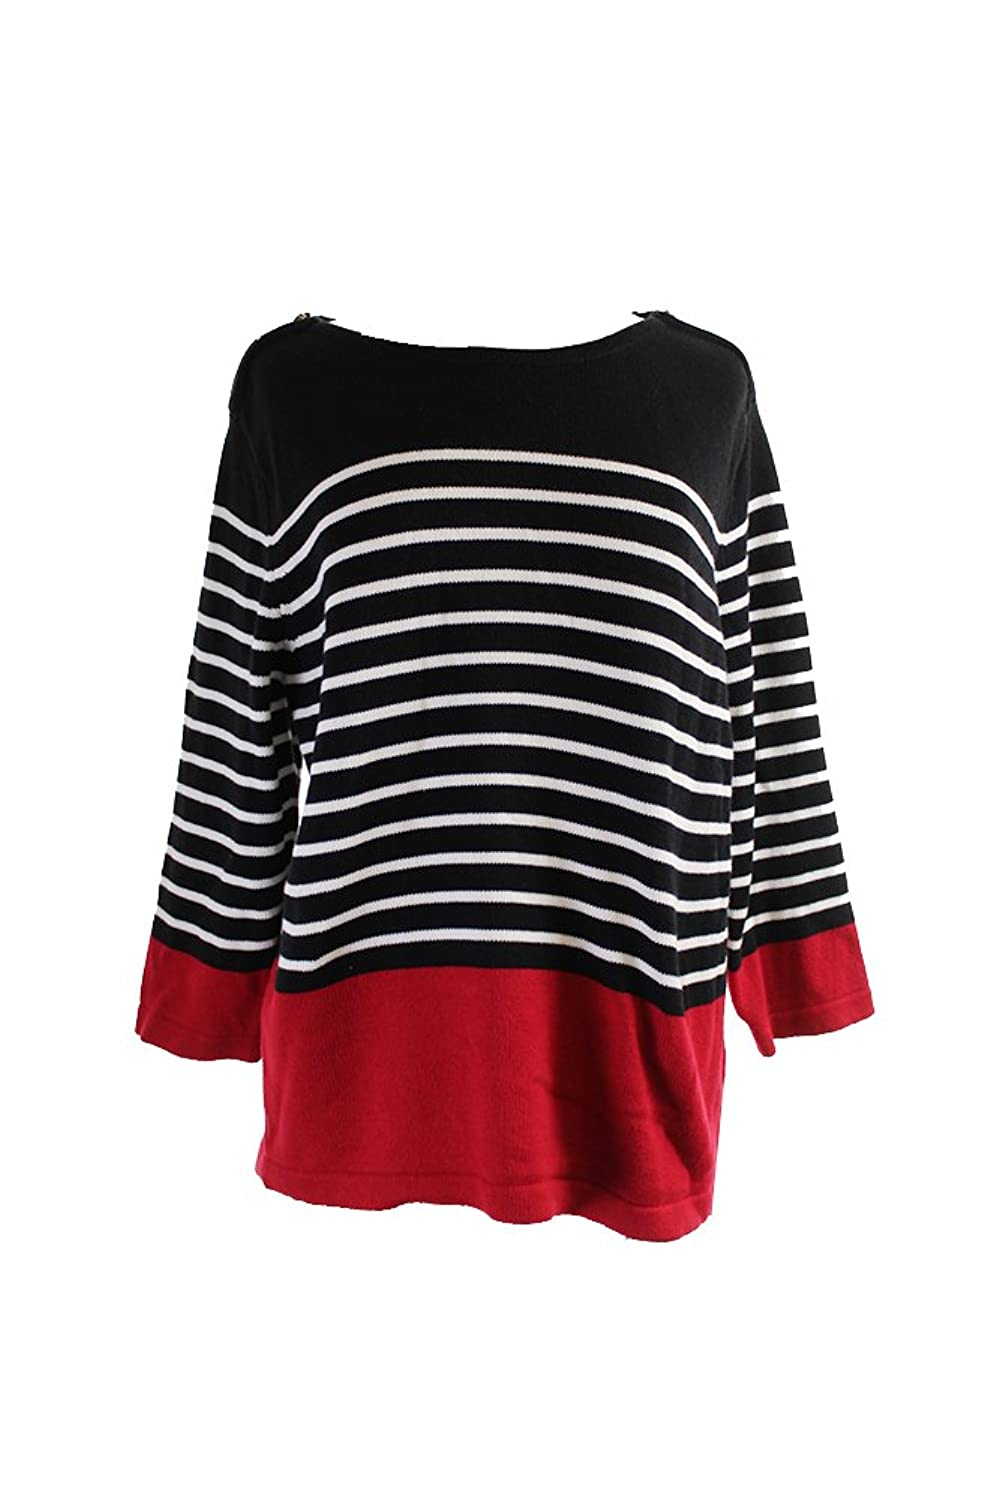 Karen Scott Black Red Striped Zip-Shoulder Sweater Xl